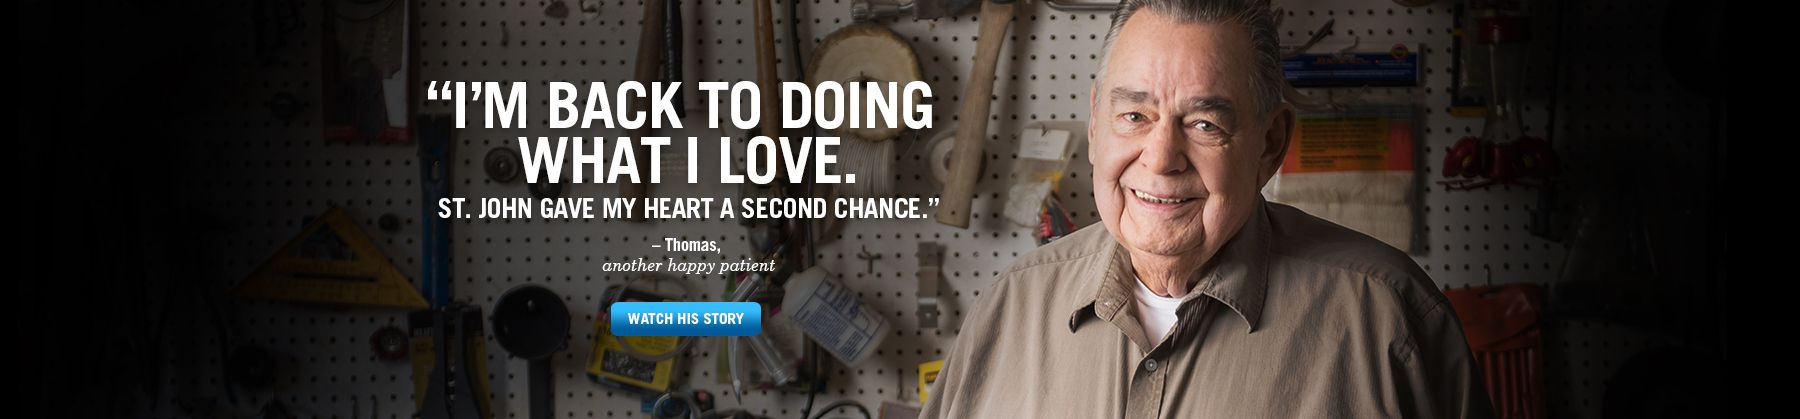 Thomas Mason, Heart Institute Patient